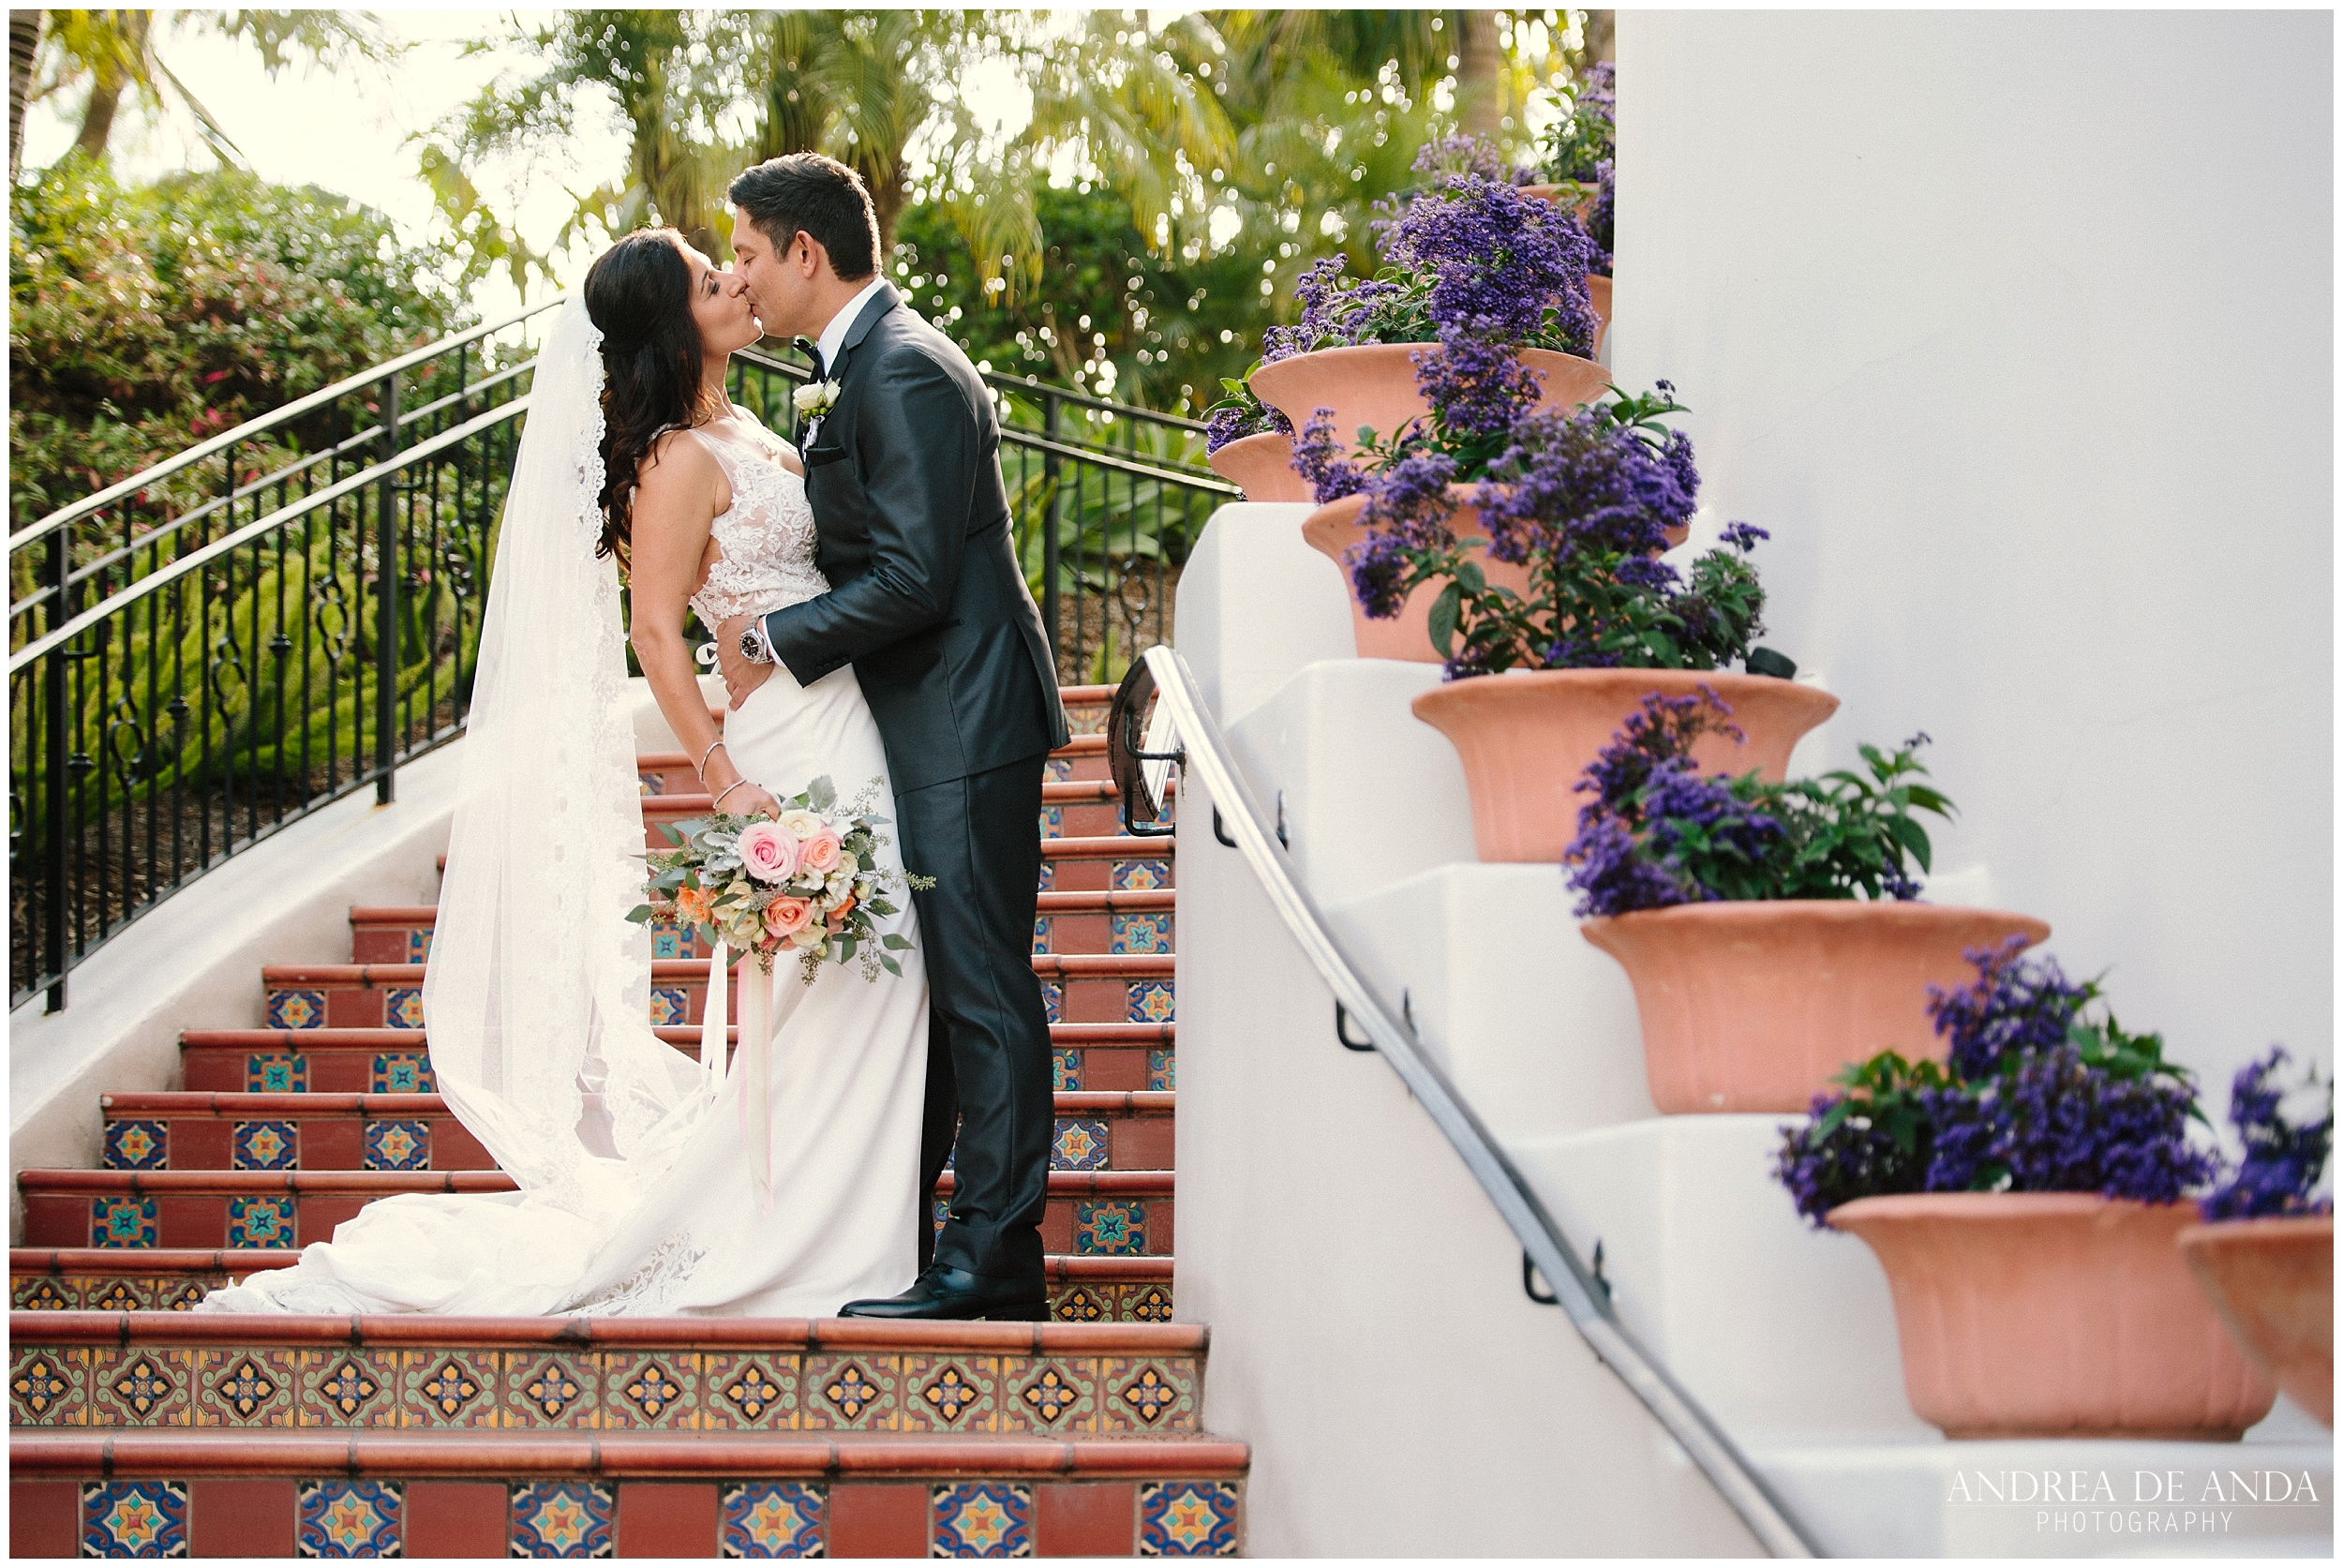 Bacara Santa Barbara Wedding by Andrea de Anda Photography__0011.jpg